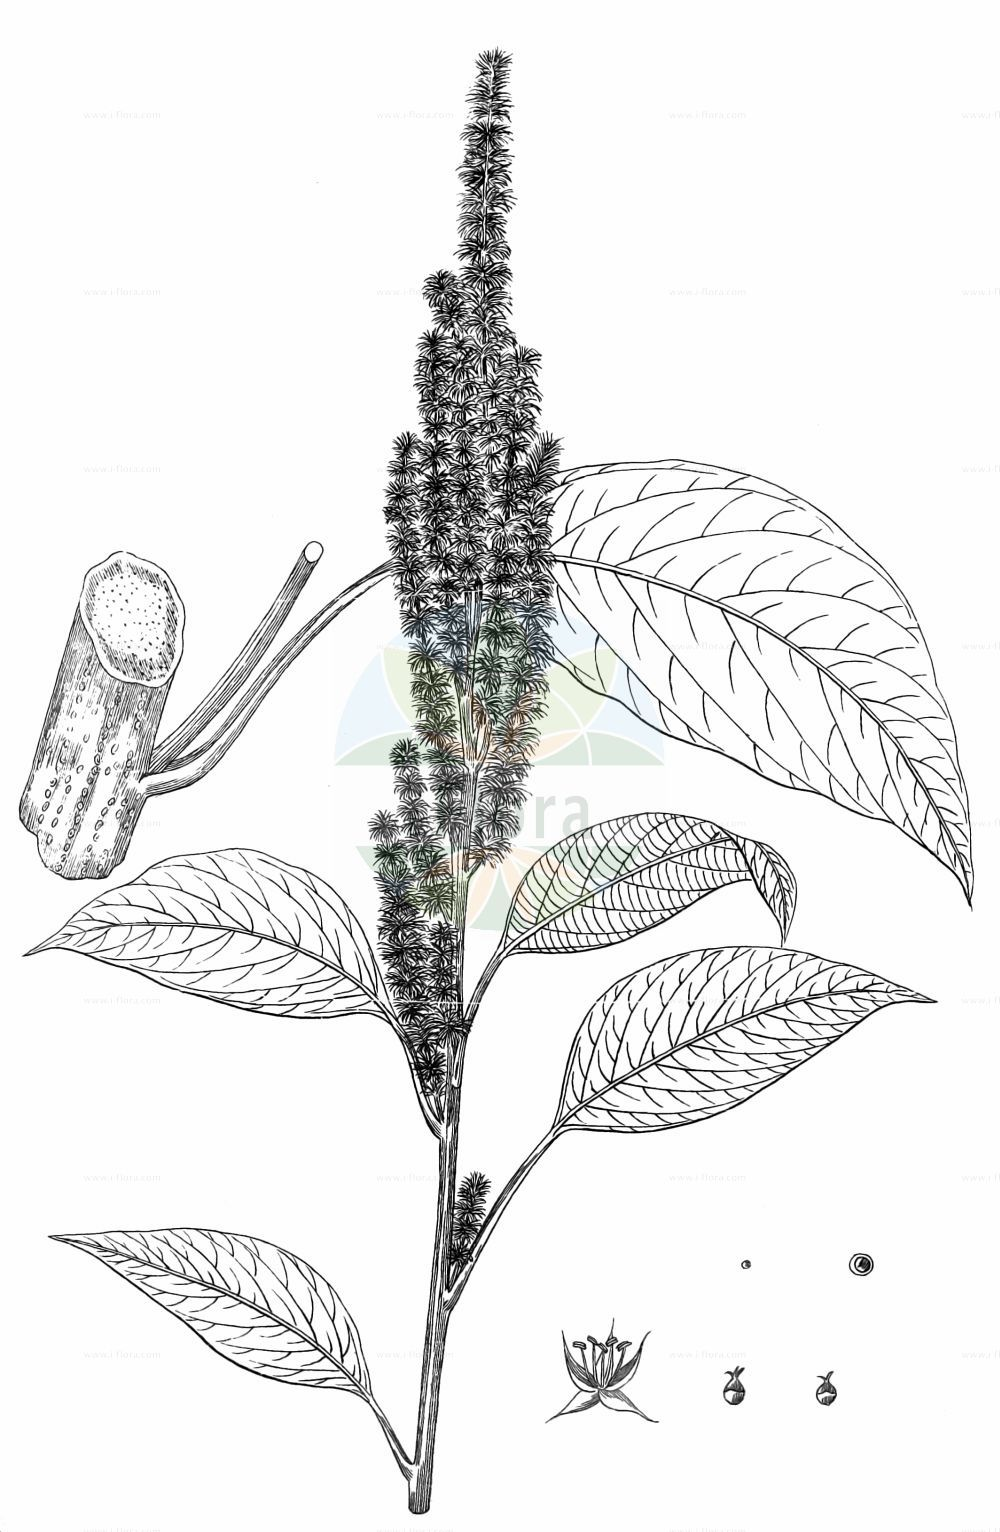 Historische Abbildung von Amaranthus cruentus. Das Bild zeigt Blatt, Bluete, Frucht und Same. ---- Historical Drawing of Amaranthus cruentus.The image is showing leaf, flower, fruit and seed.(Amaranthus cruentus,Amaranthus cruentus,Amaranthus paniculatus,Amaranthus paniculatus var. cruentus,Amaranthus,Fuchsschwanz,Pigweed,Amaranthaceae,Fuchsschwanzgewaechse,Pigweed family,Blatt,Bluete,Frucht,Same,leaf,flower,fruit,seed,Kirtikar & Basu (1918))